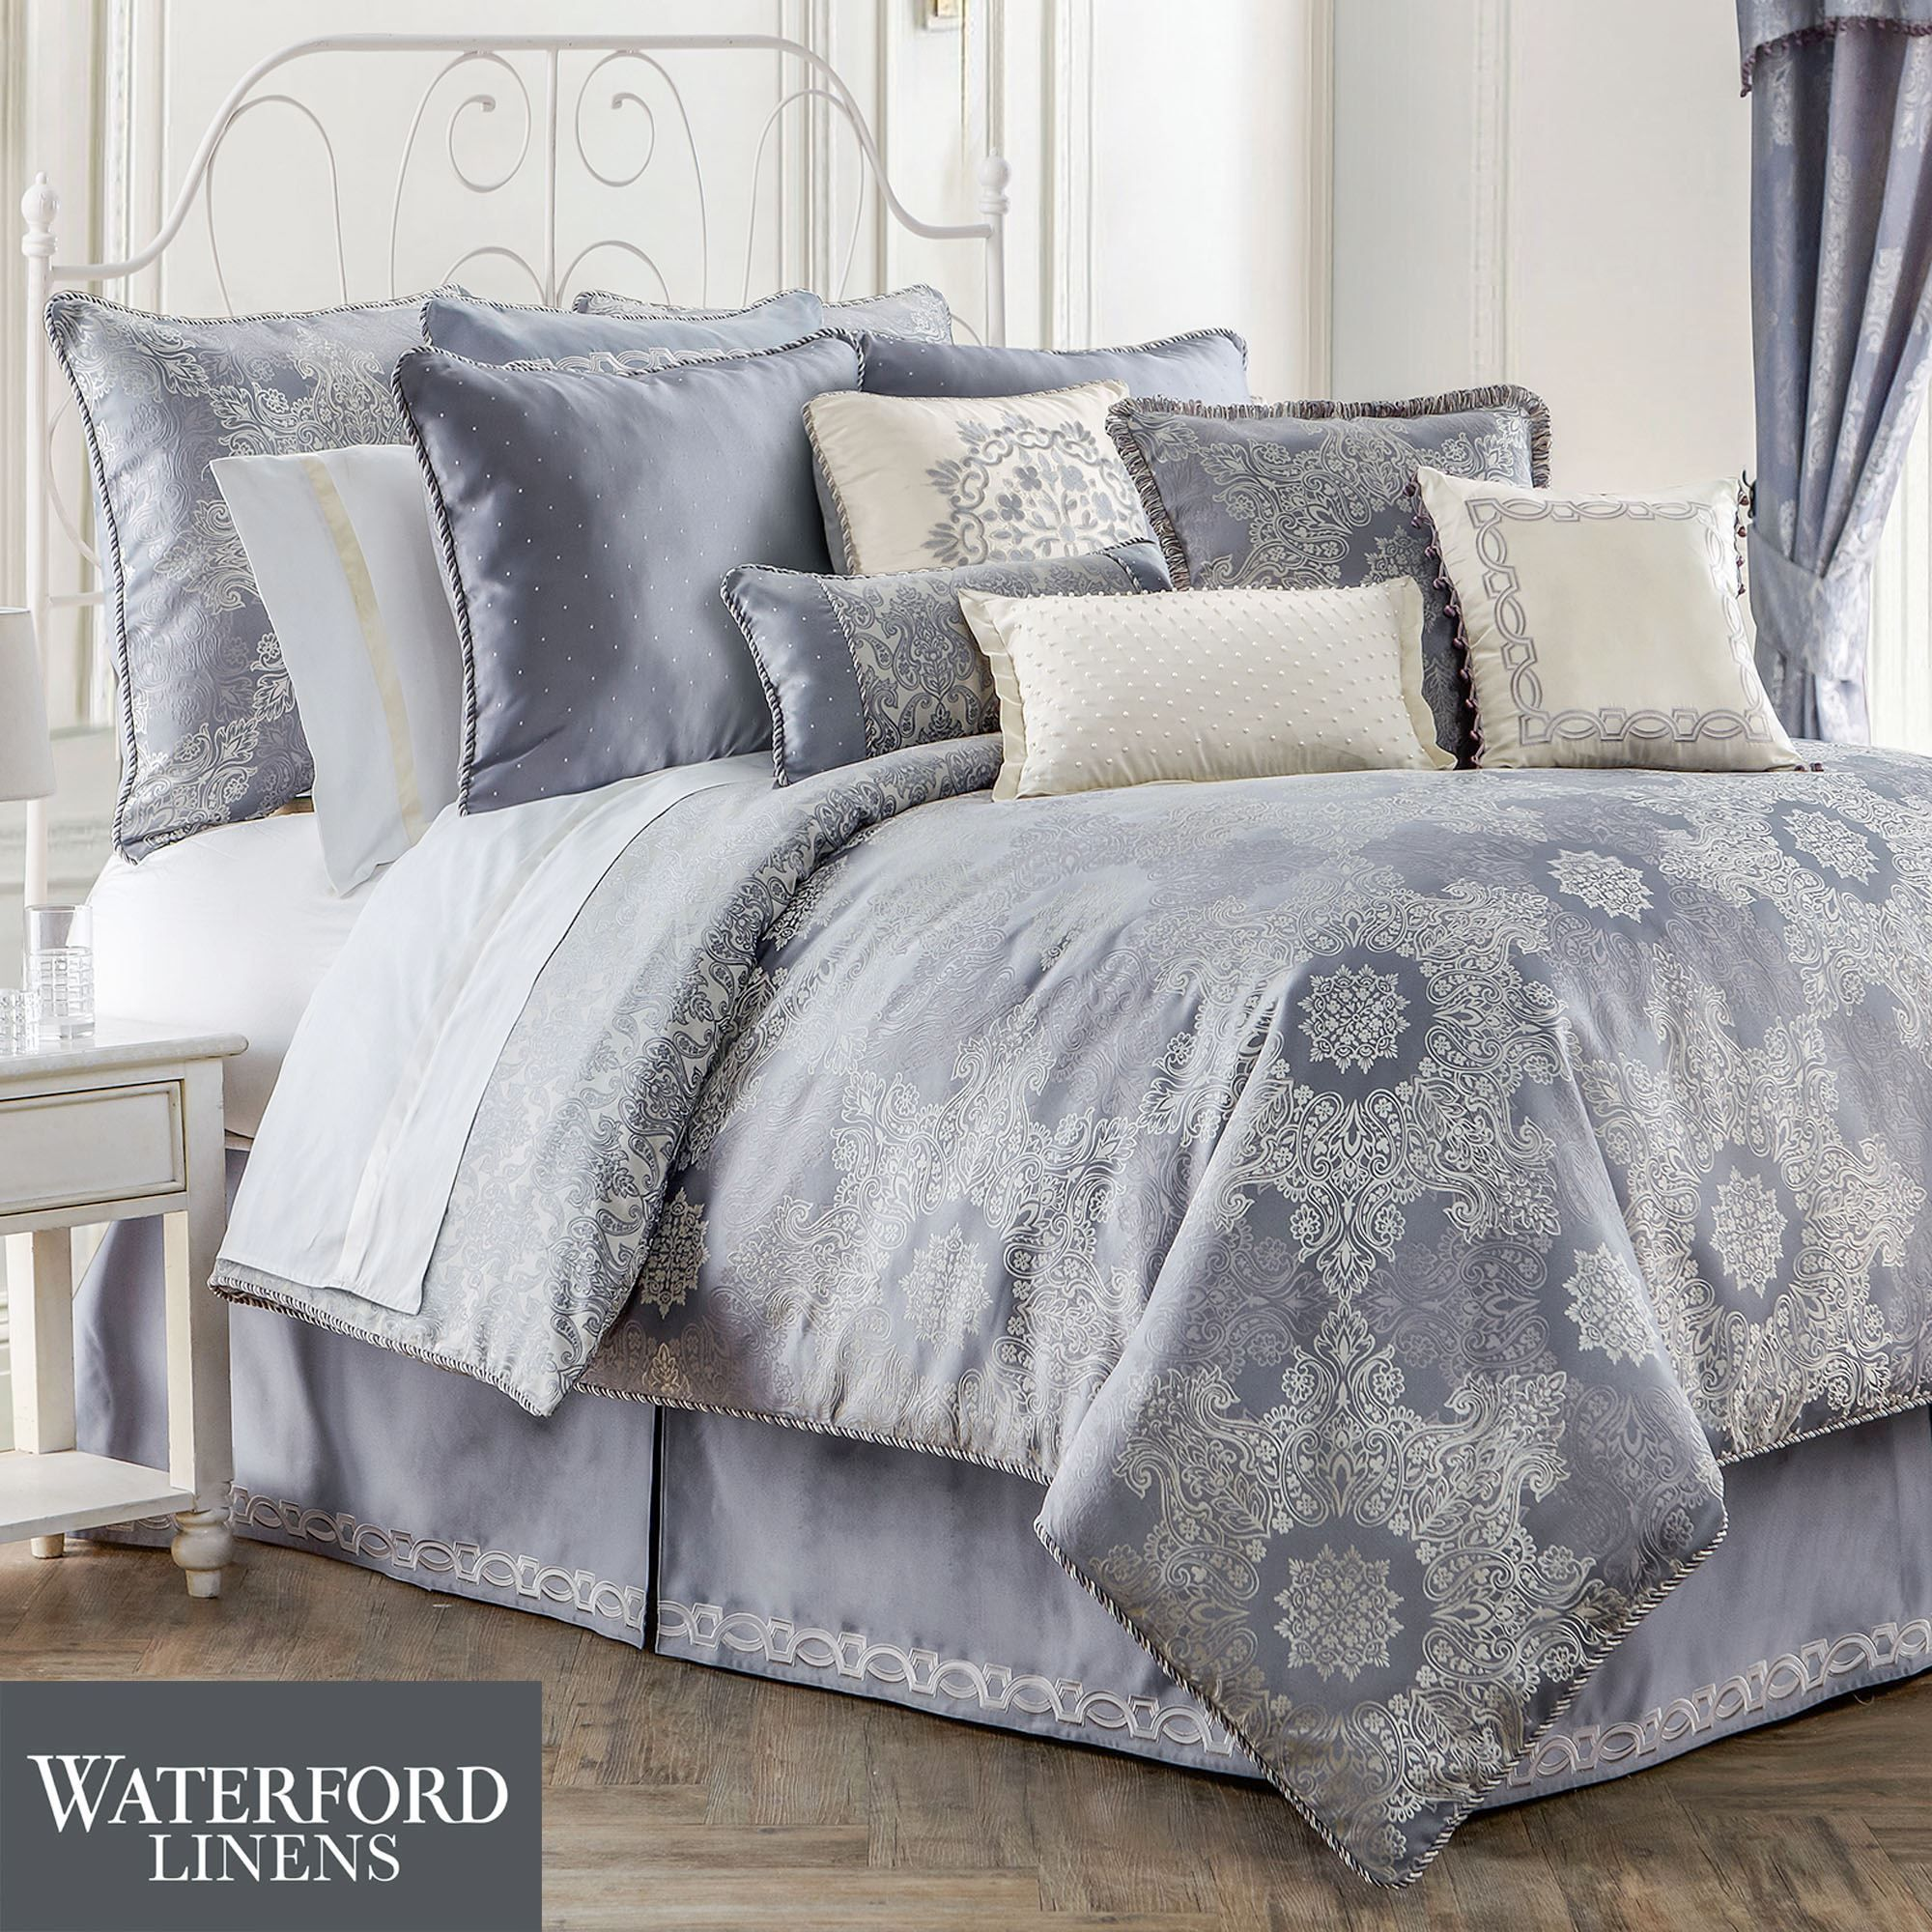 Rooms To Go Bedroom Set Best 25 Waterford Linens Ideas On Pinterest Purl Bee